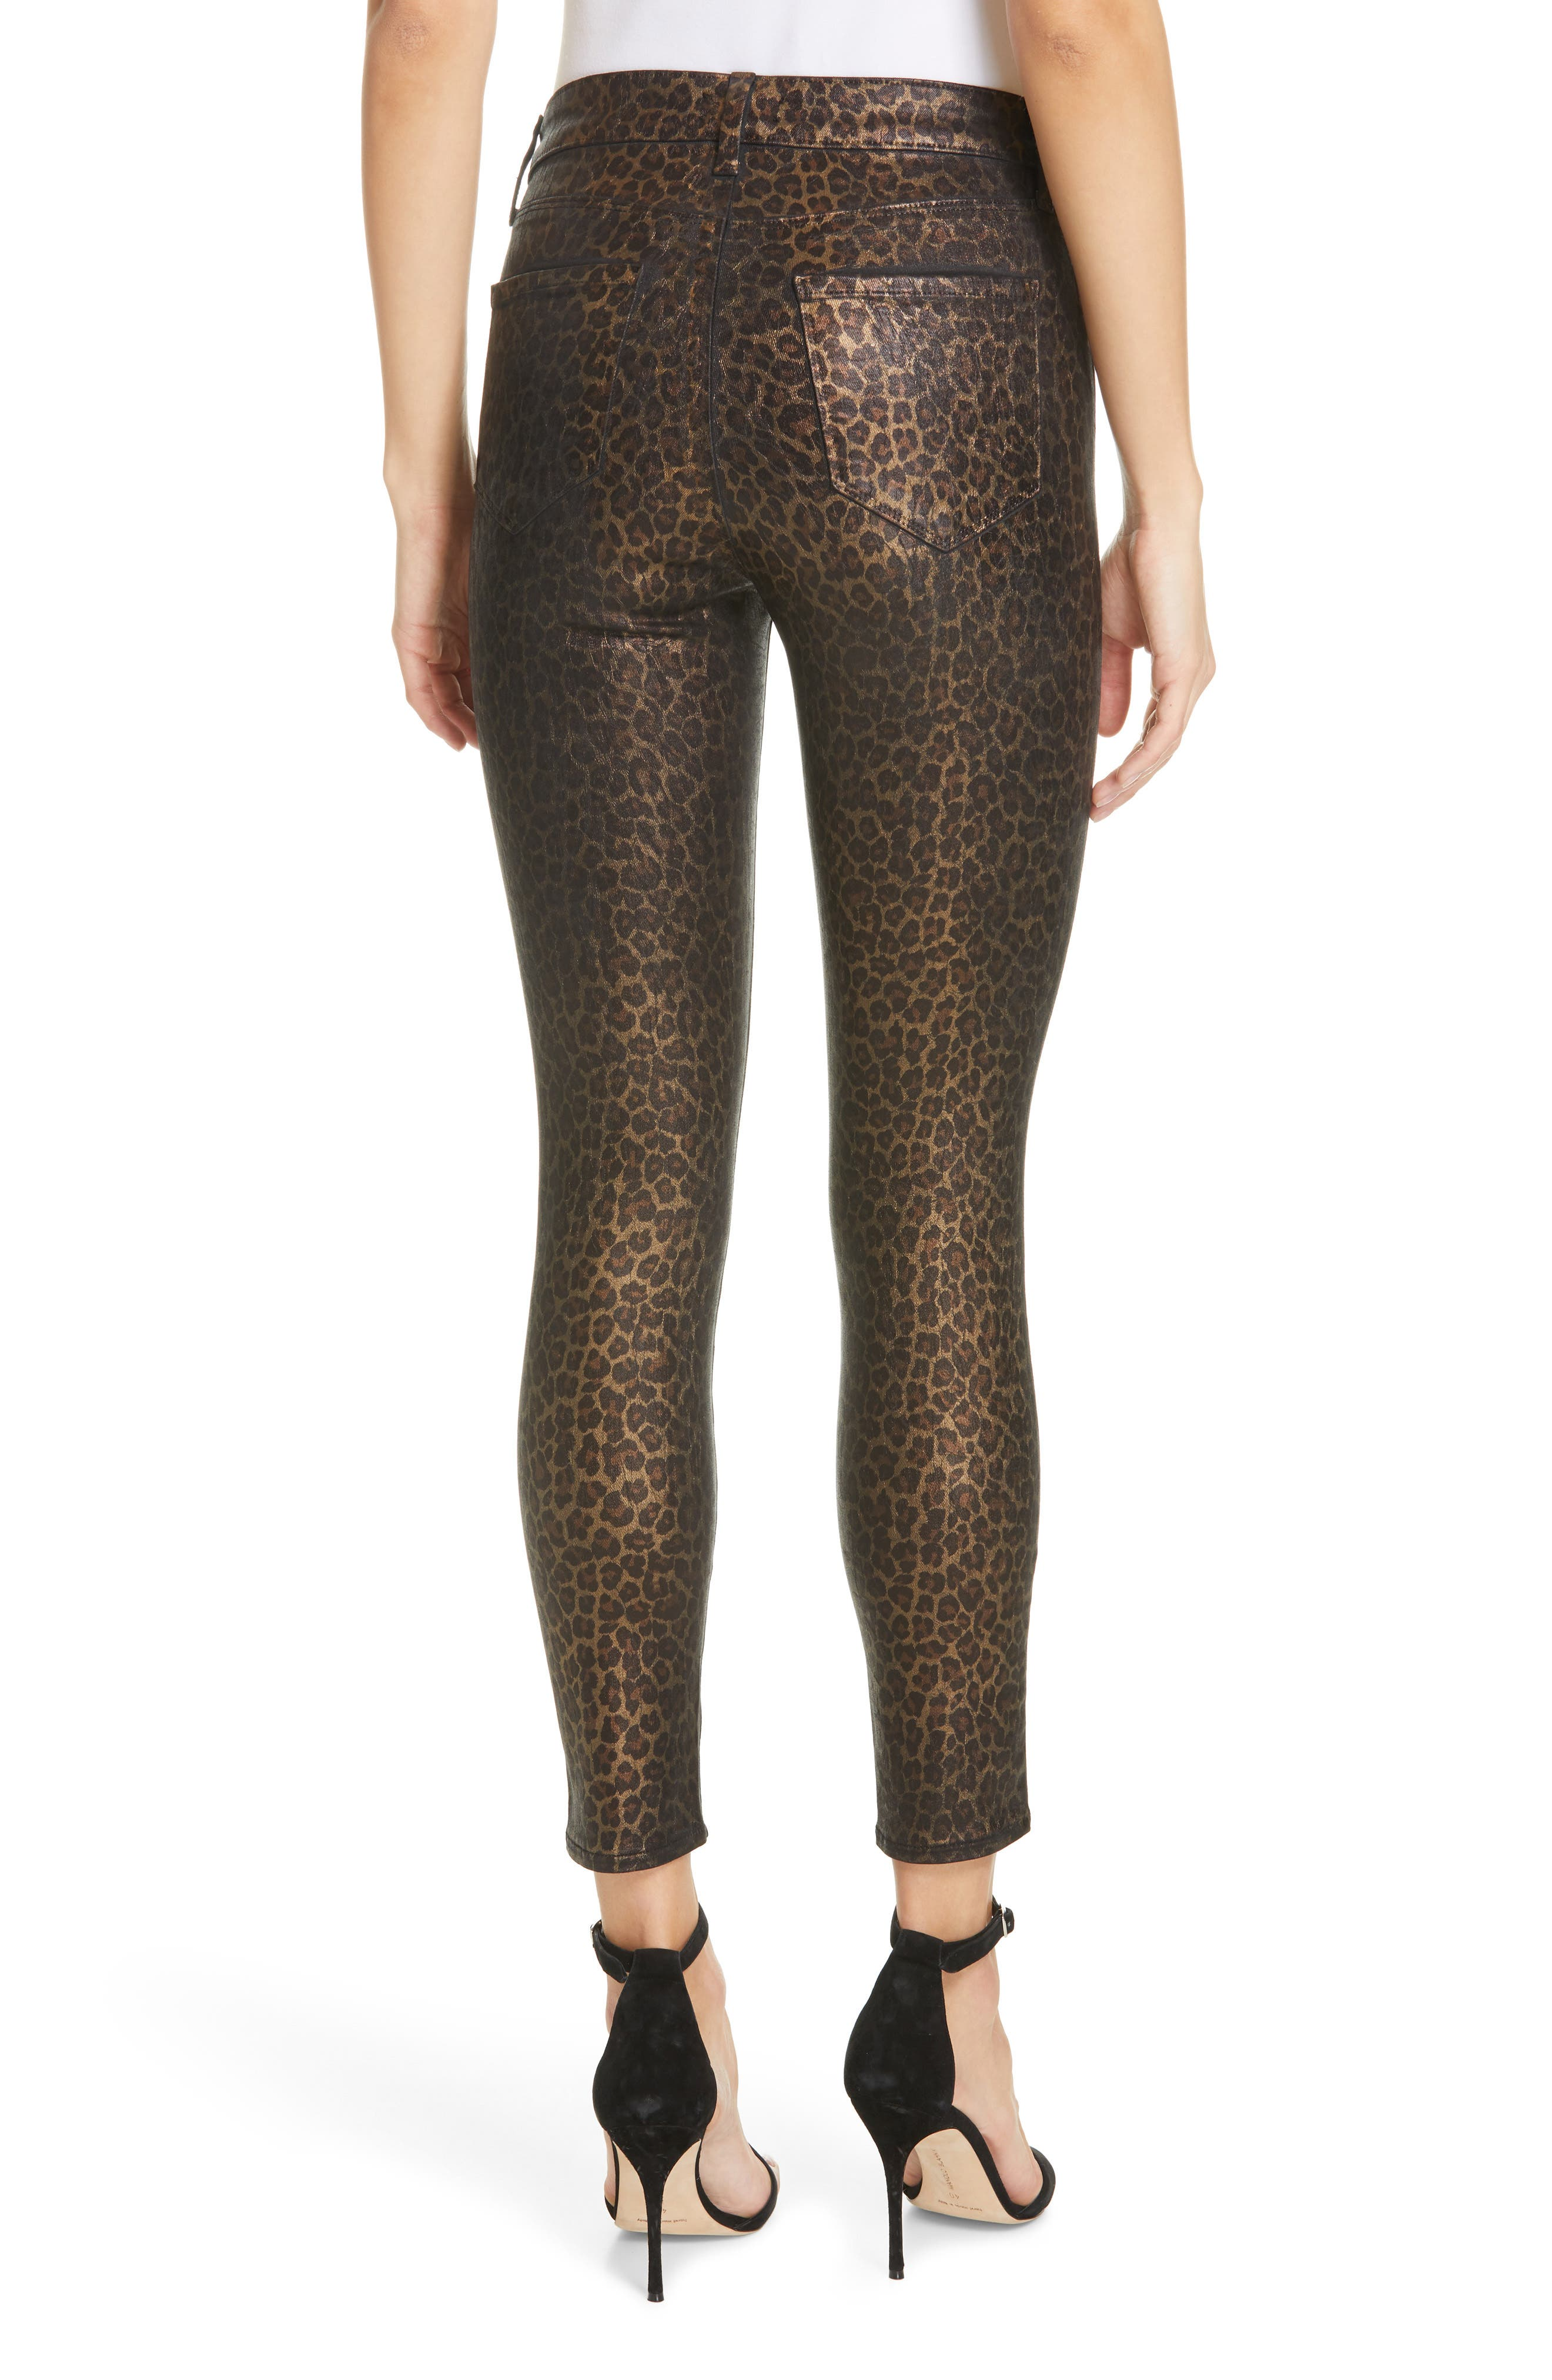 L'AGENCE, Margot Metallic Coated Crop Skinny Jeans, Alternate thumbnail 2, color, BLACK CHEETAH CRACKLE FOIL